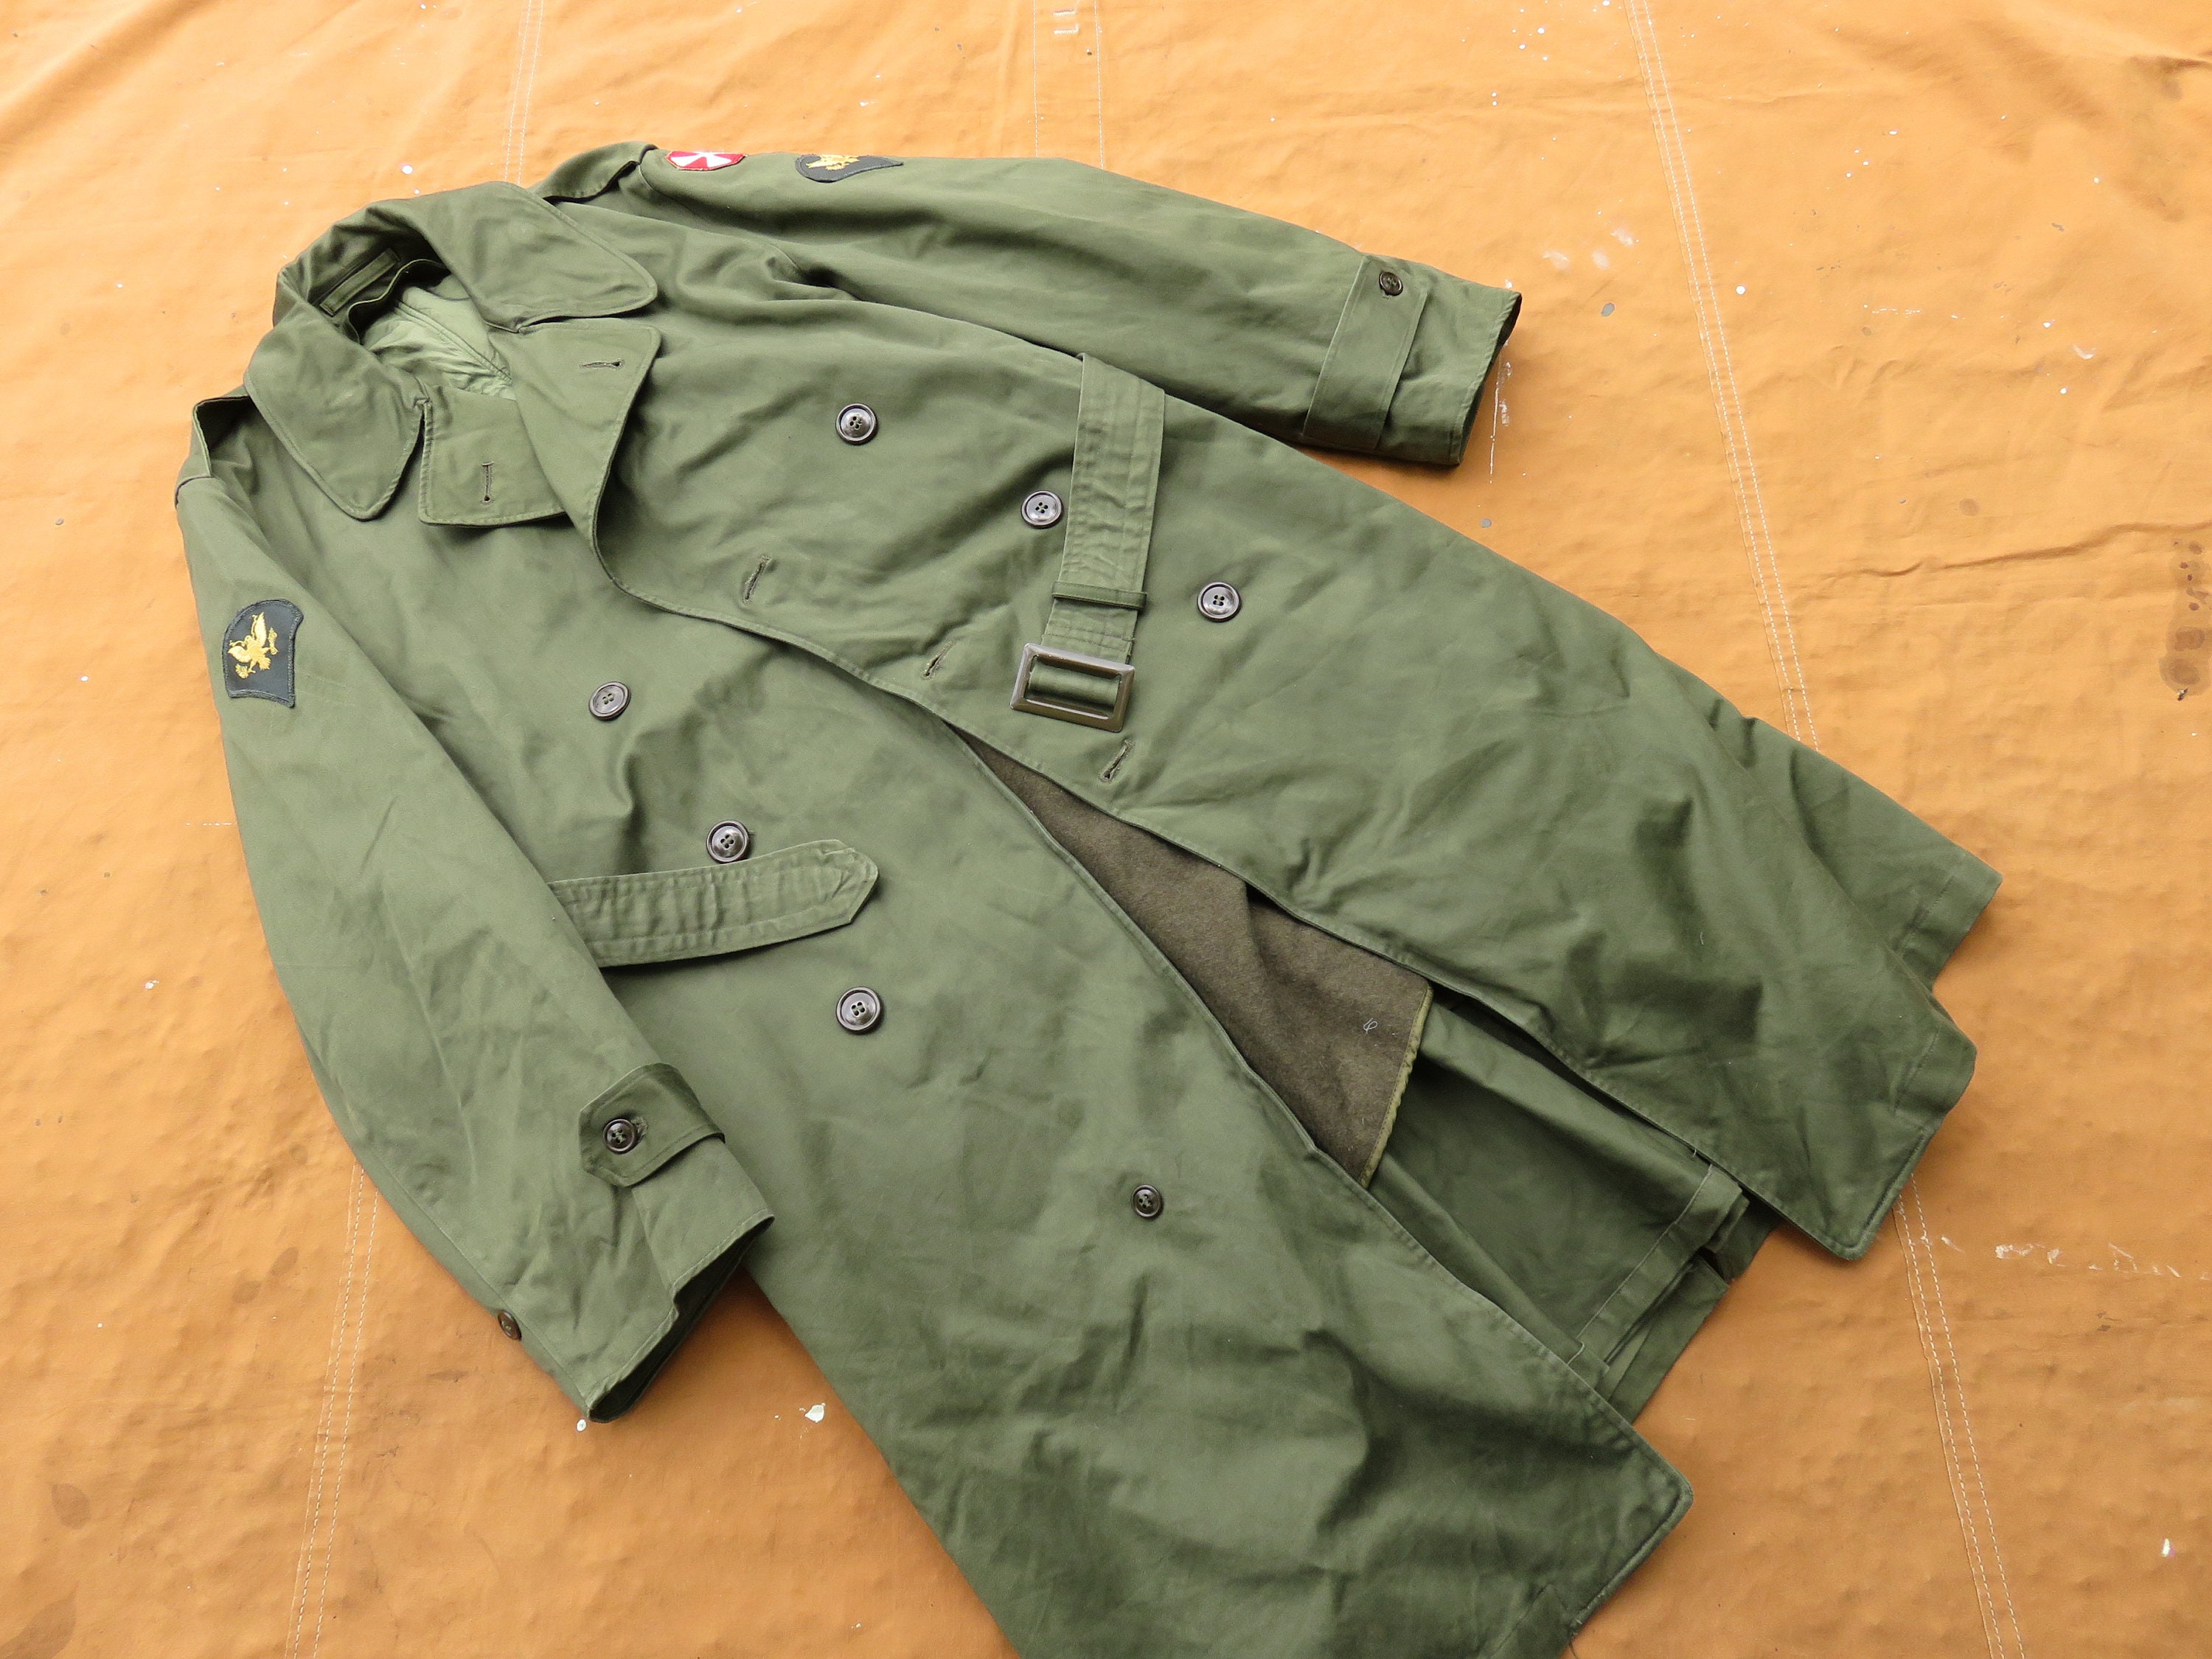 1950s Mens Hats | 50s Vintage Men's Hats Small 50S Us Army Cotton Sateen Trench CoatBelted, Lined, Removable Liner, 1950S $90.00 AT vintagedancer.com